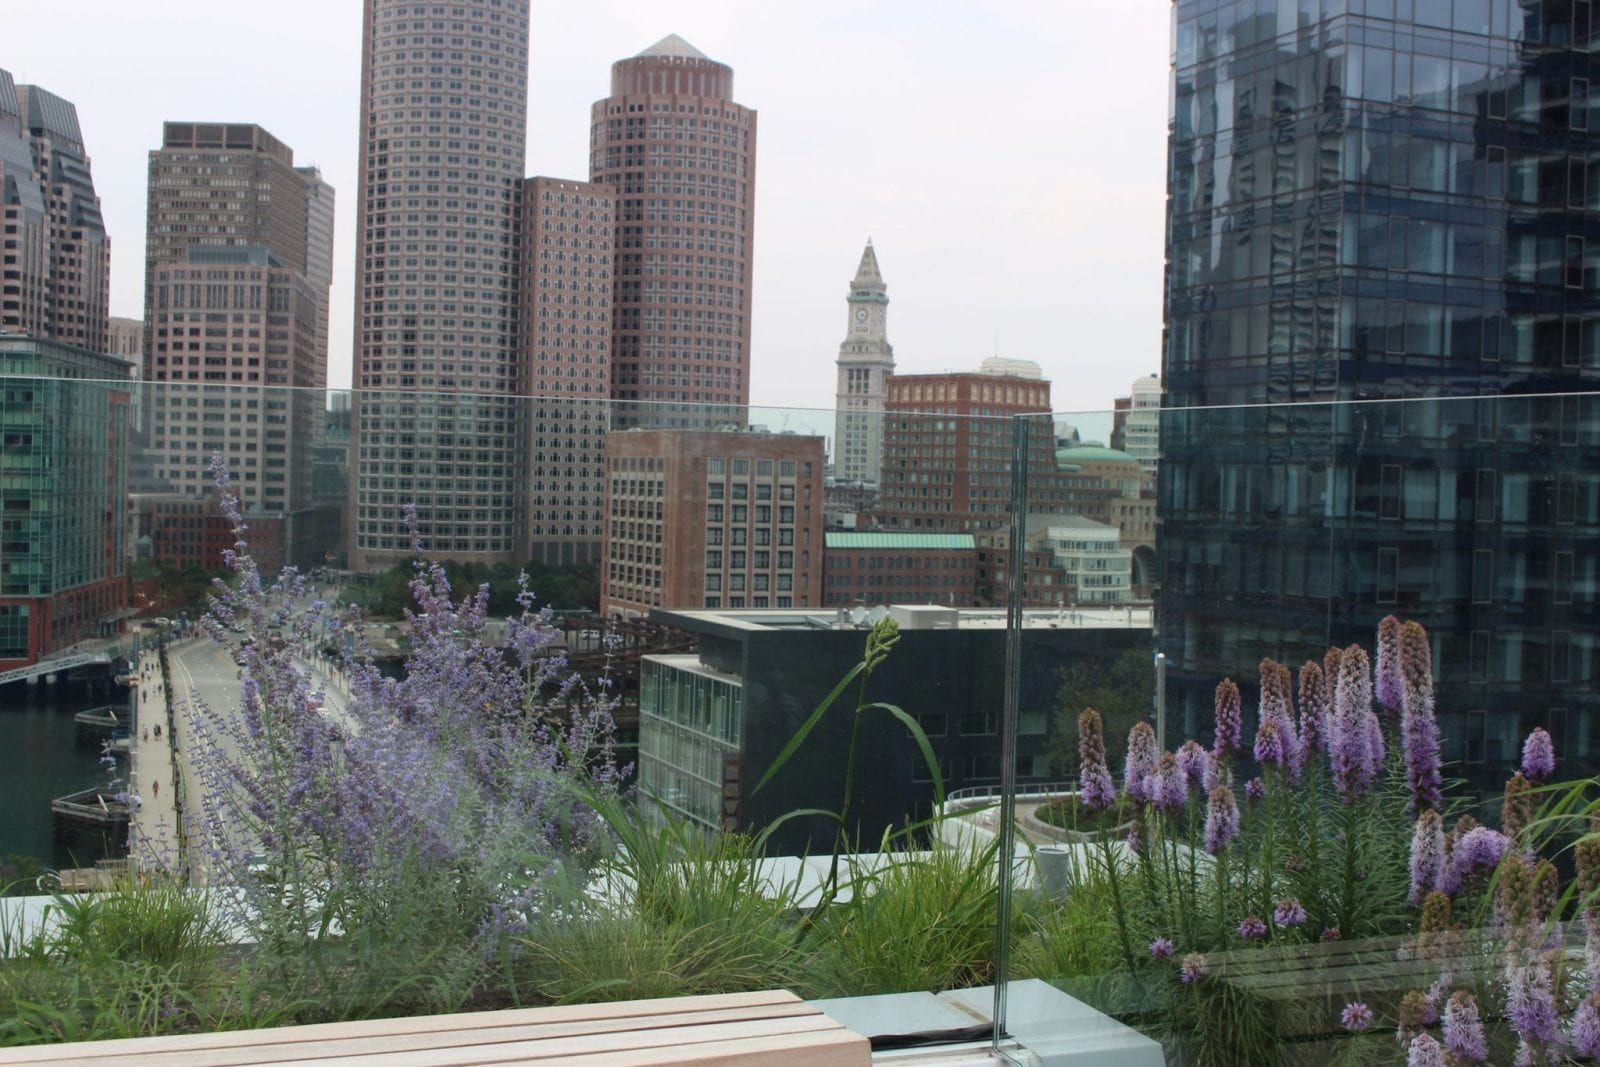 This is the YOTEL Boston rooftop terrace view.